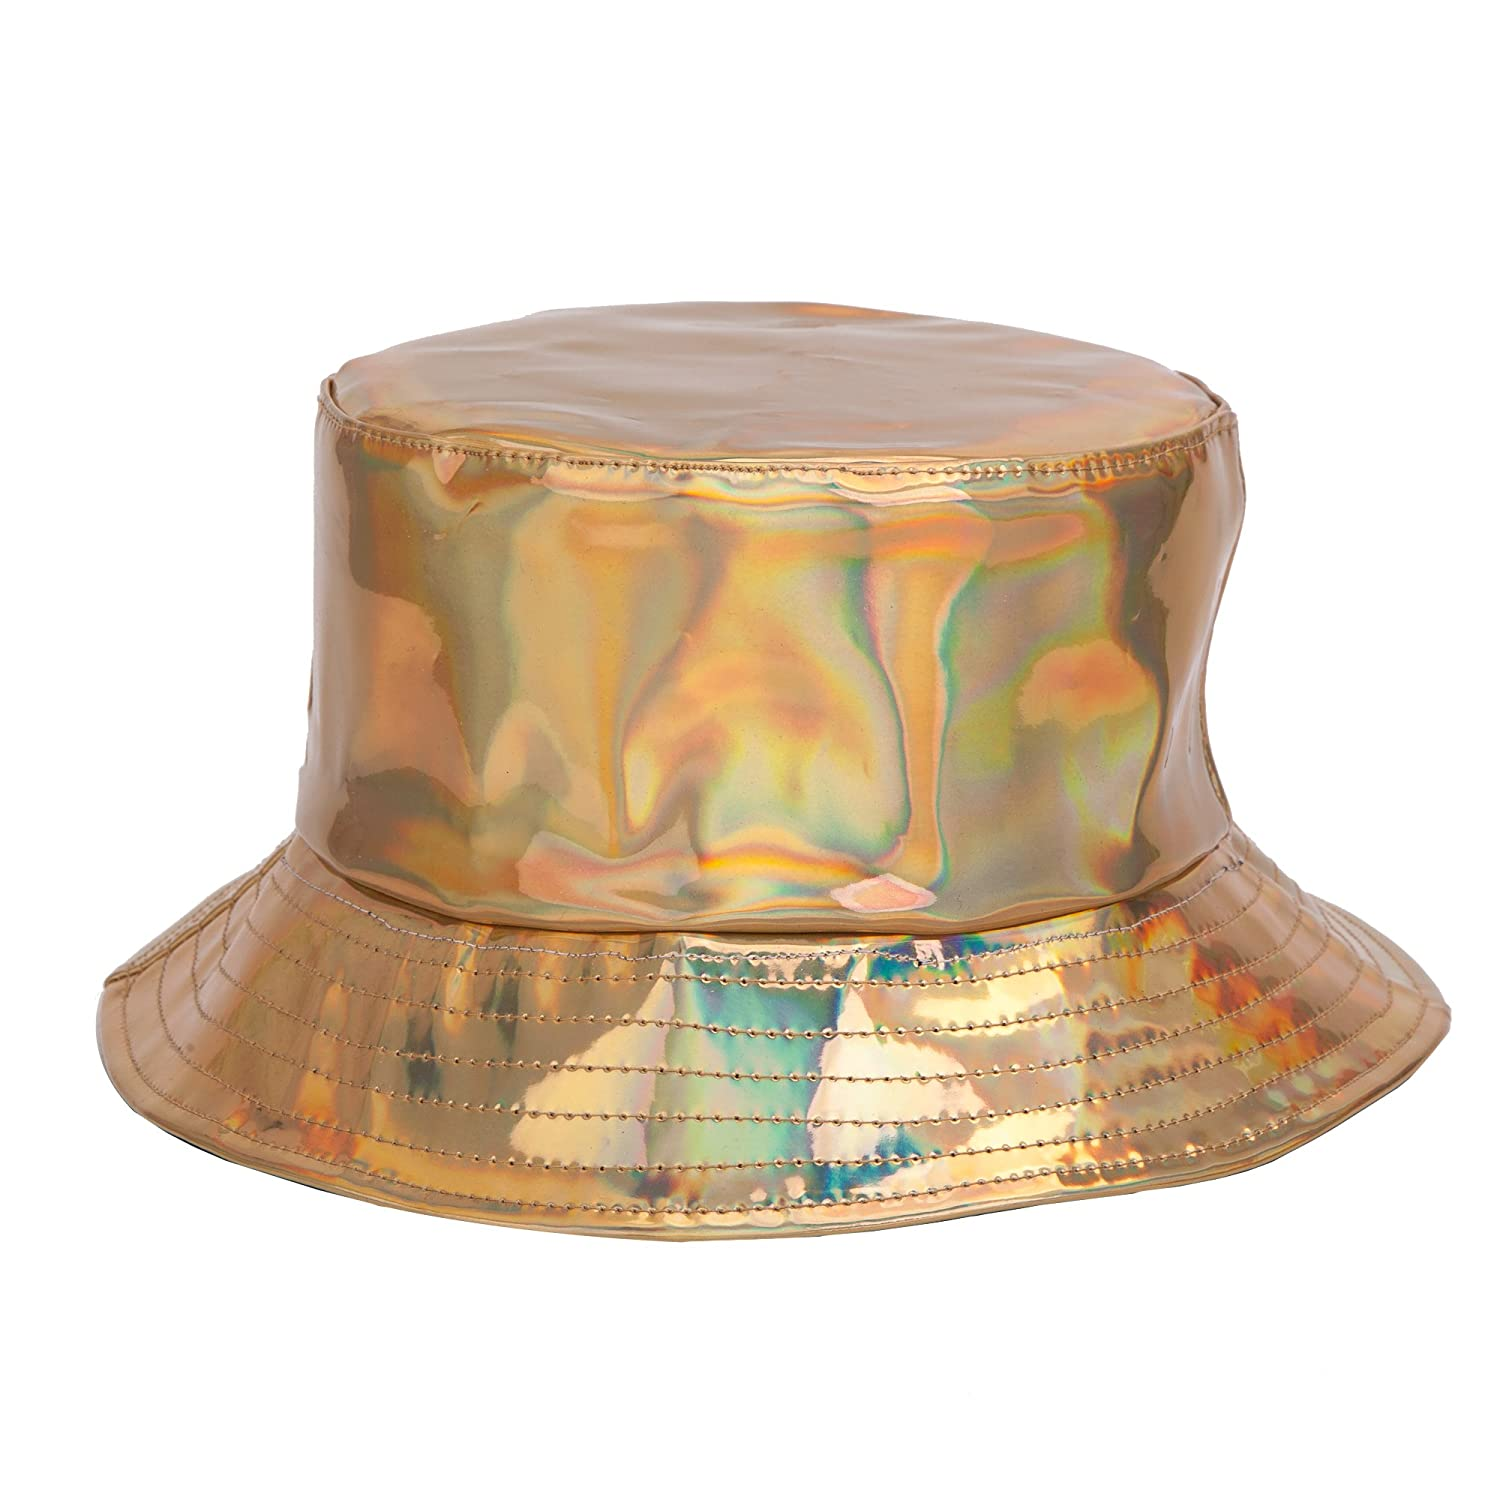 BFD One Holographic Bucket Hat Shiny Metallic PVC Bucket Hat Silver Gold Mens Womens Sun Hat One Size Fits All Wipe Clean Shiny Unisex Hologram Gold Silver Bucket Hat